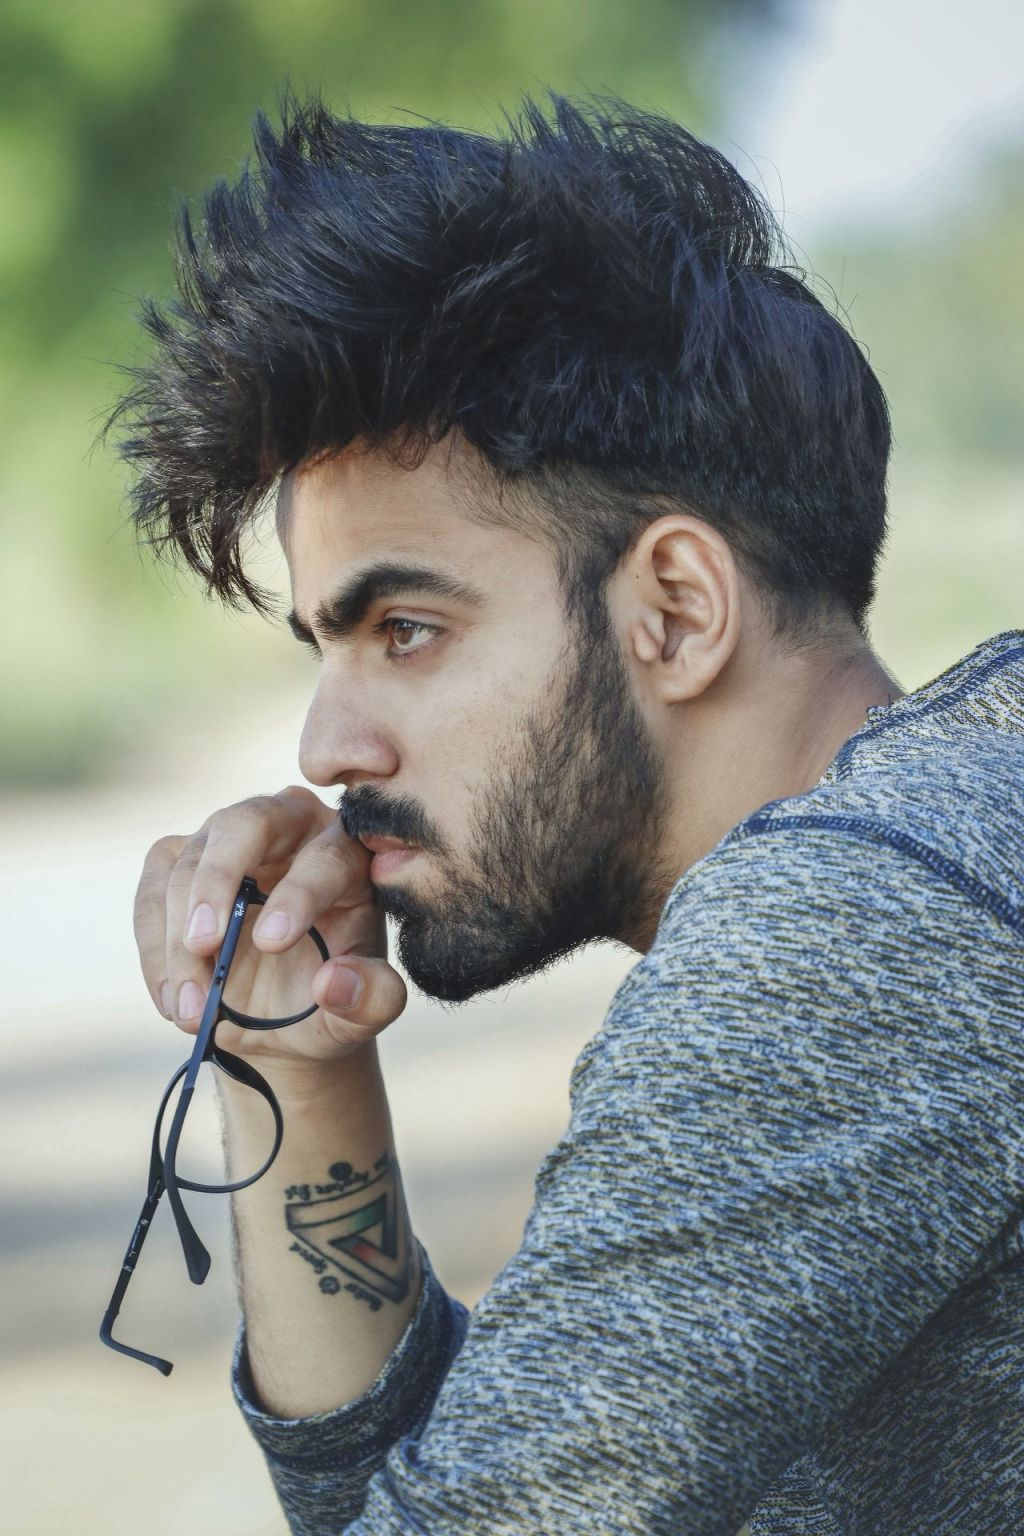 Stylish Boys Profile Pics Dp For Whatsapp Amp Facebook - 600×900